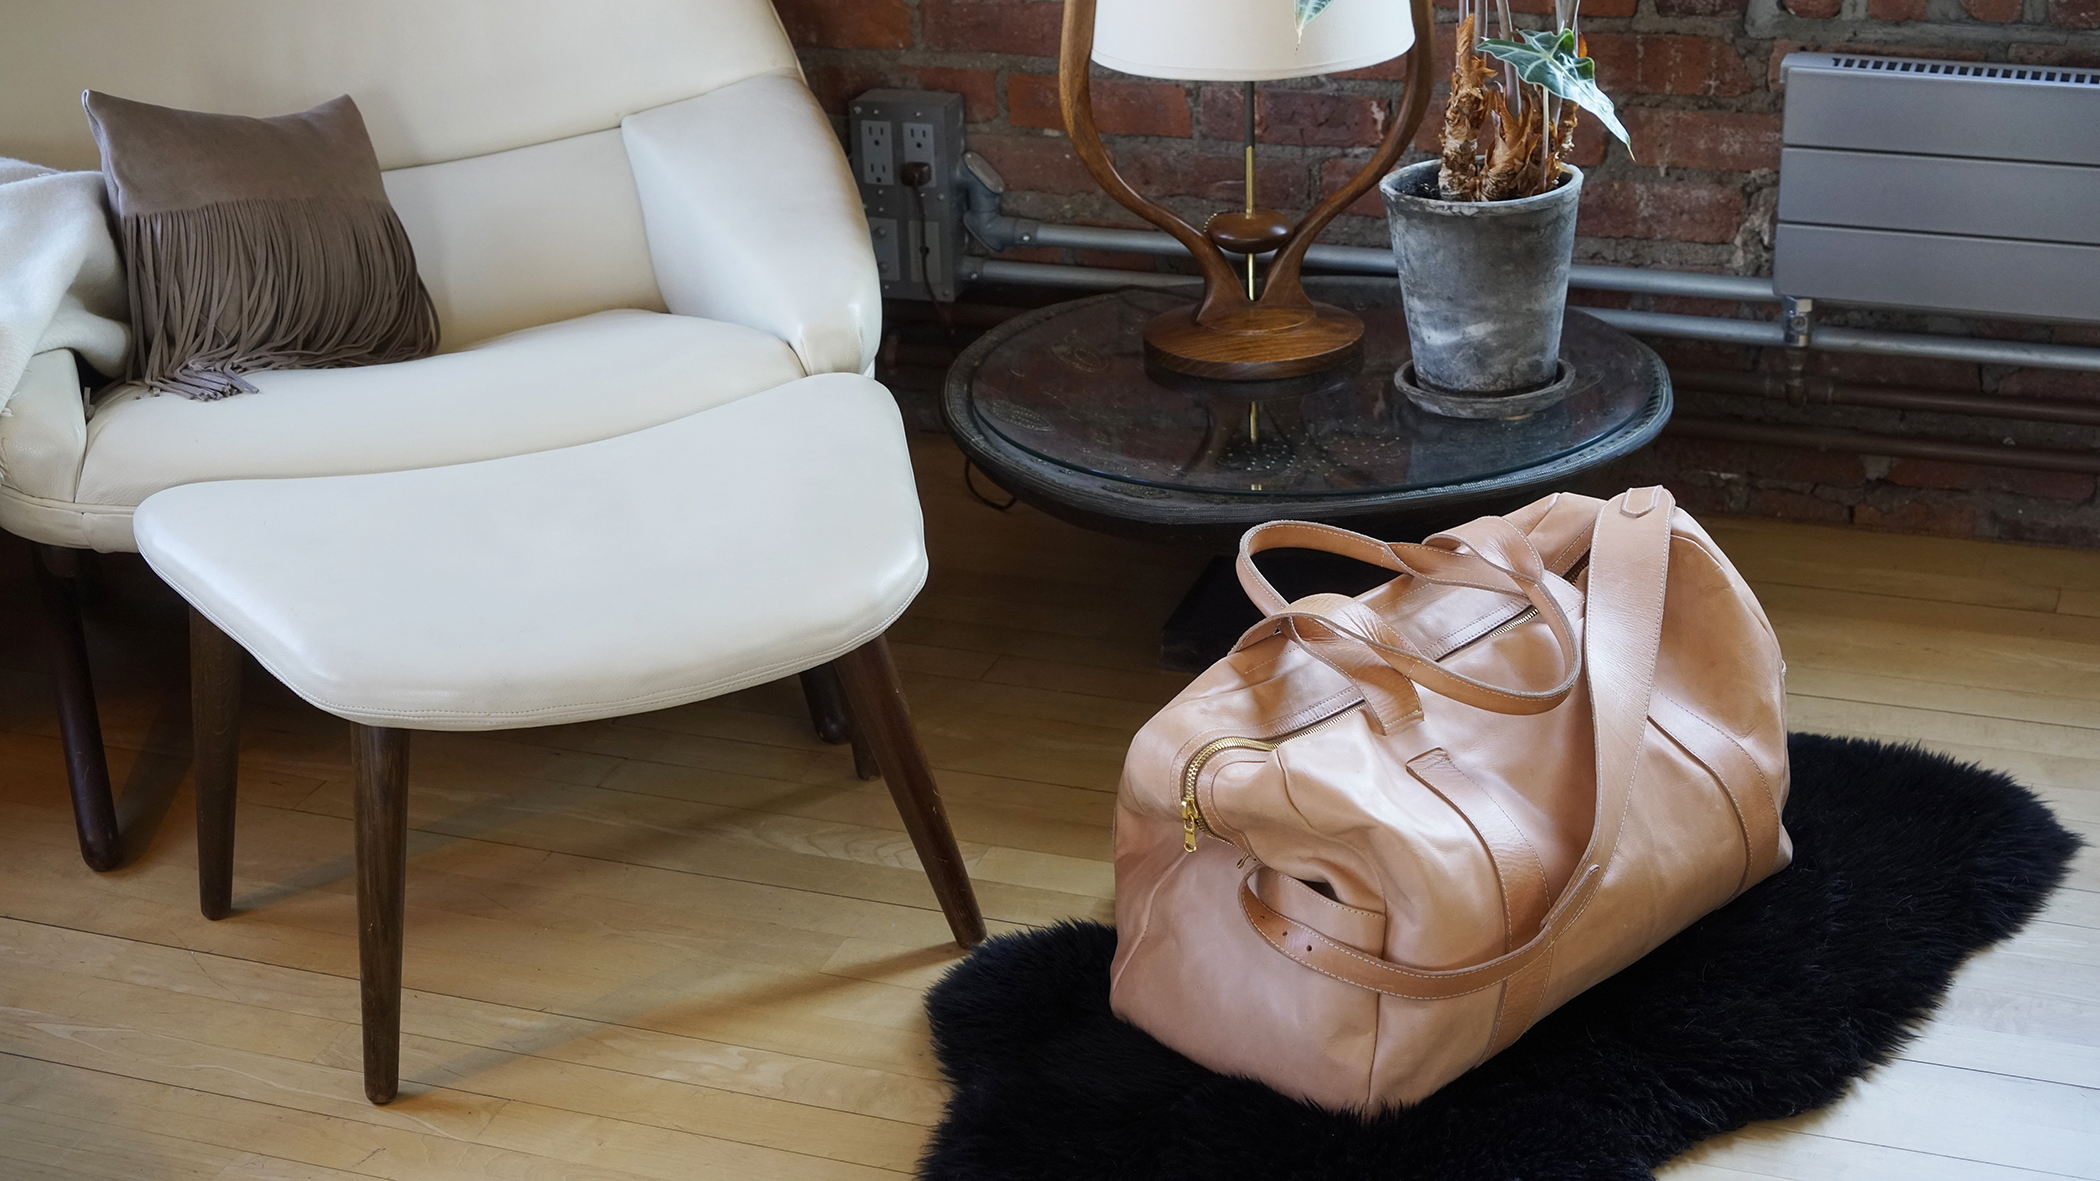 Range Travel Bag  in Veg Tan and  Fringe Pillow  in Taupe | Photo: Gerald Forster